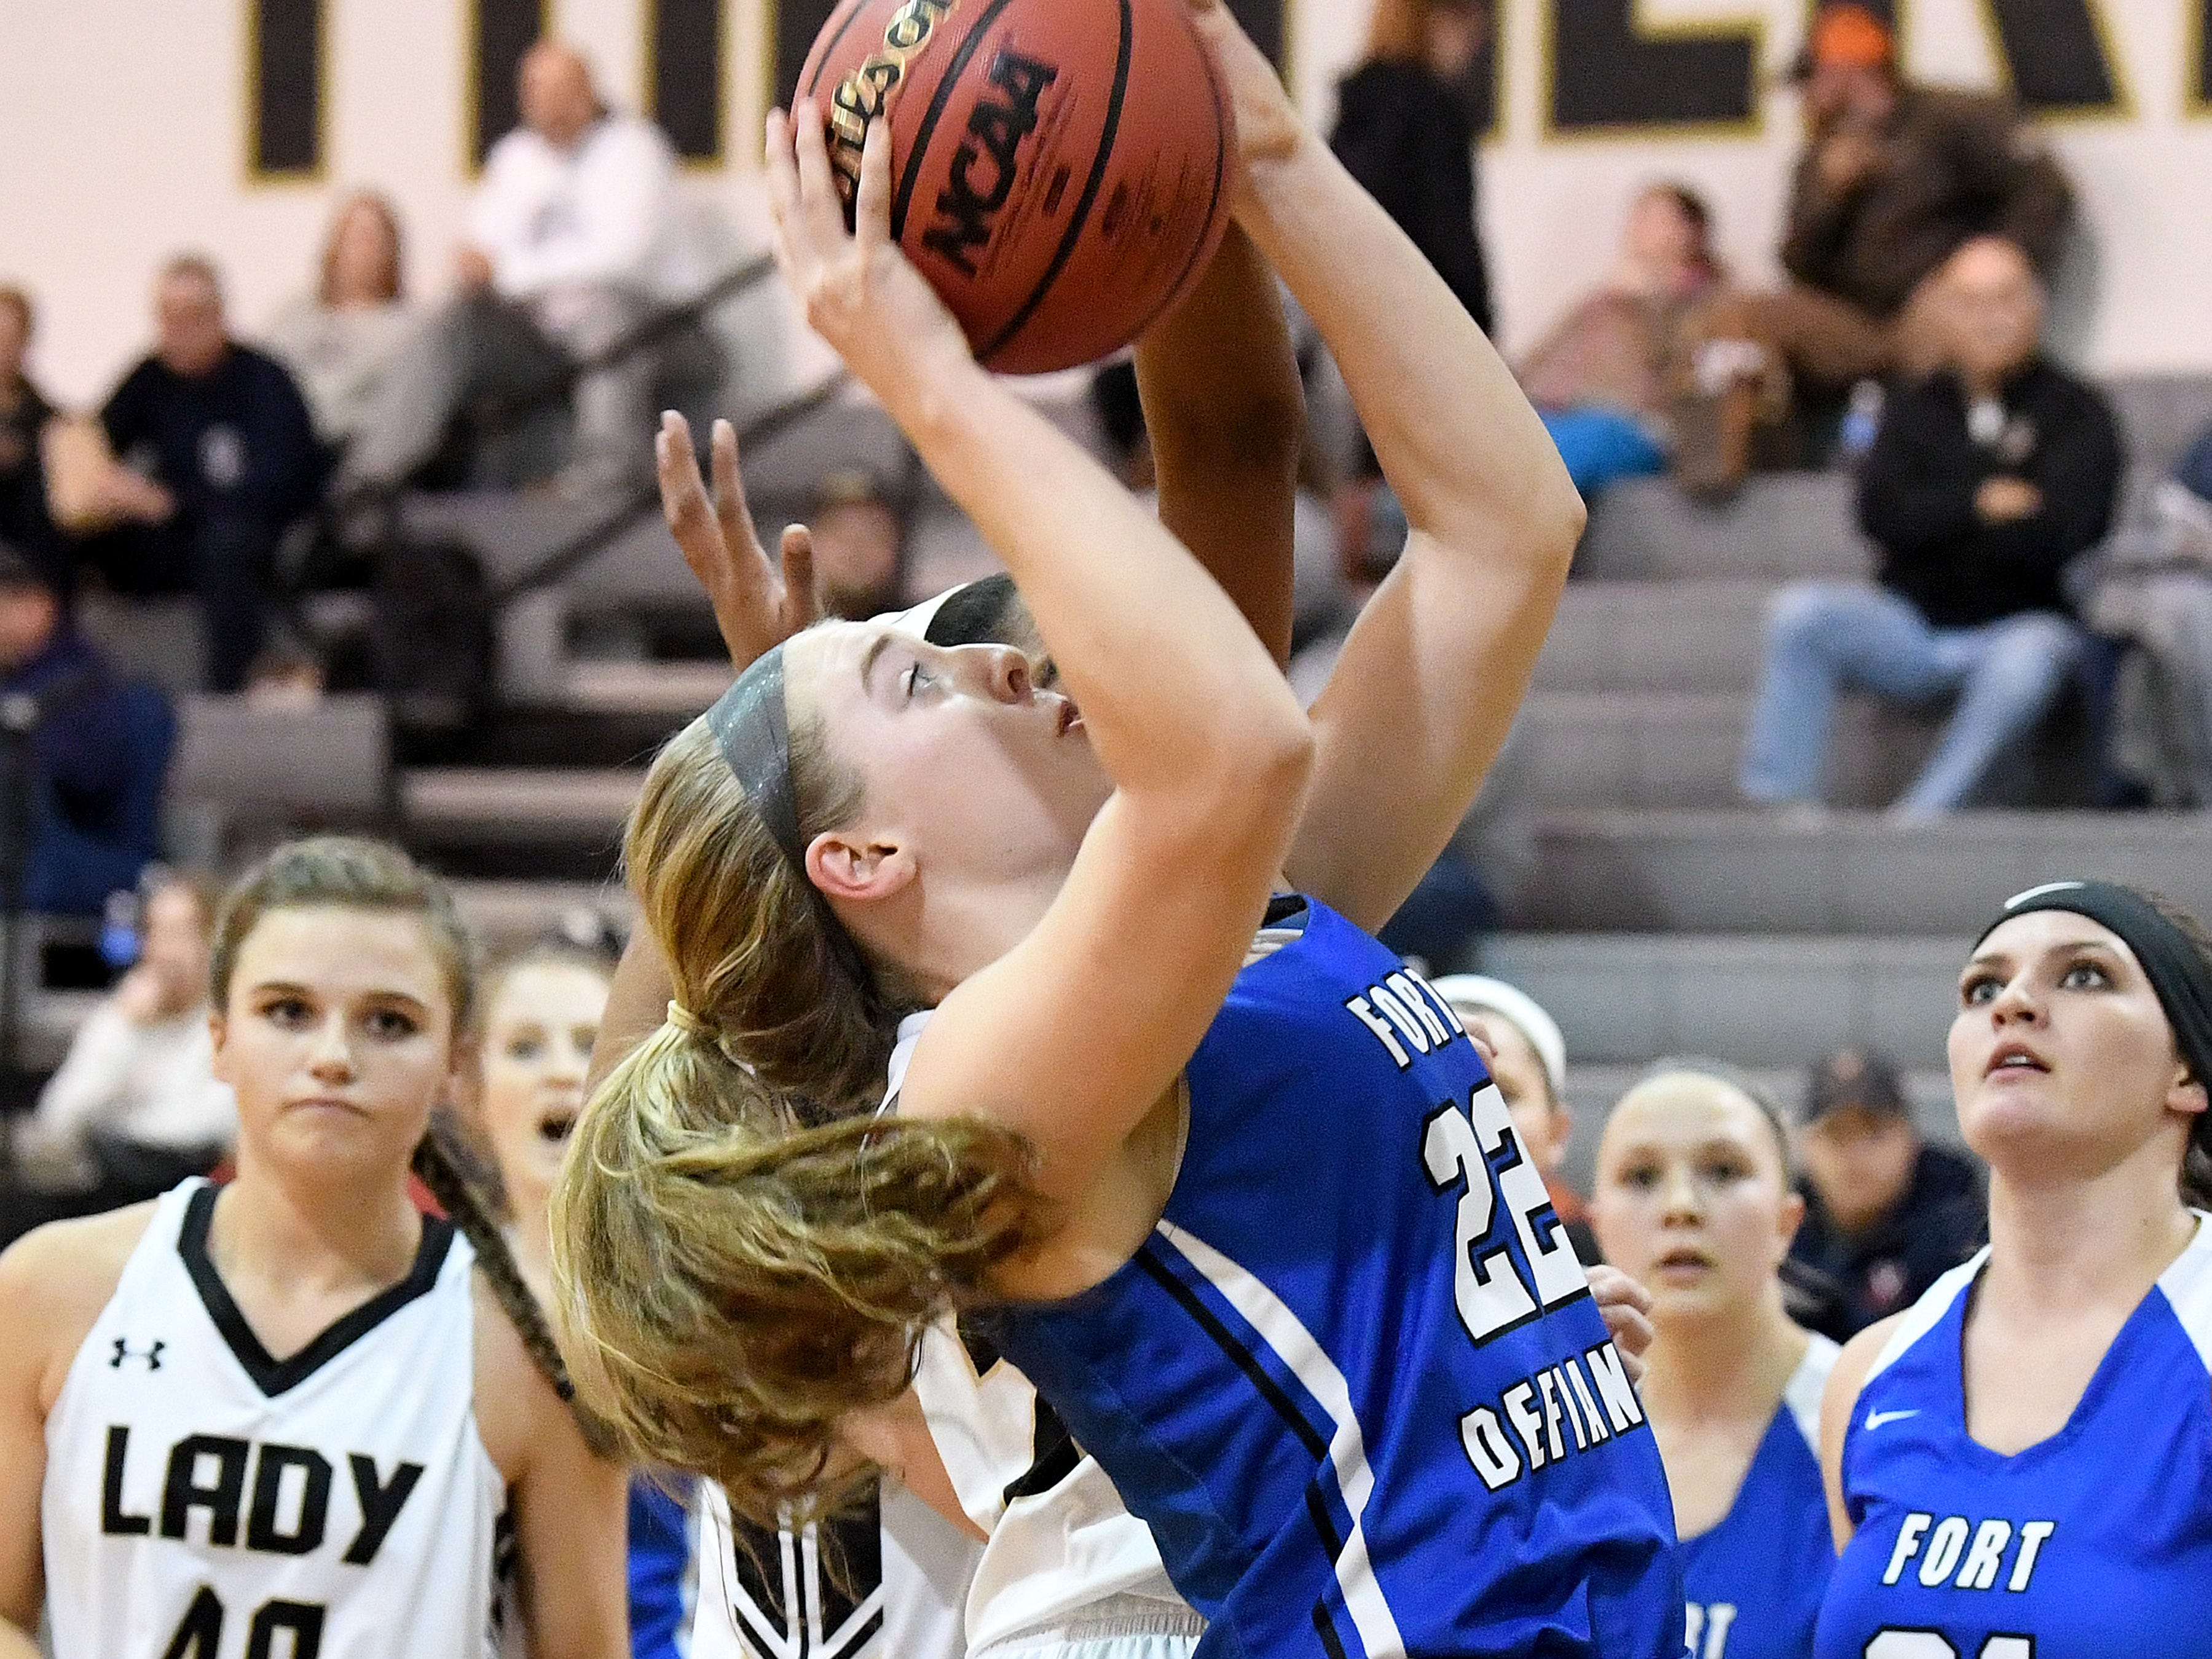 Fort Defiance's Catie Cramer looks to the basket and shoots during a game played in Swoope on Wednesday, Dec. 5, 2018.